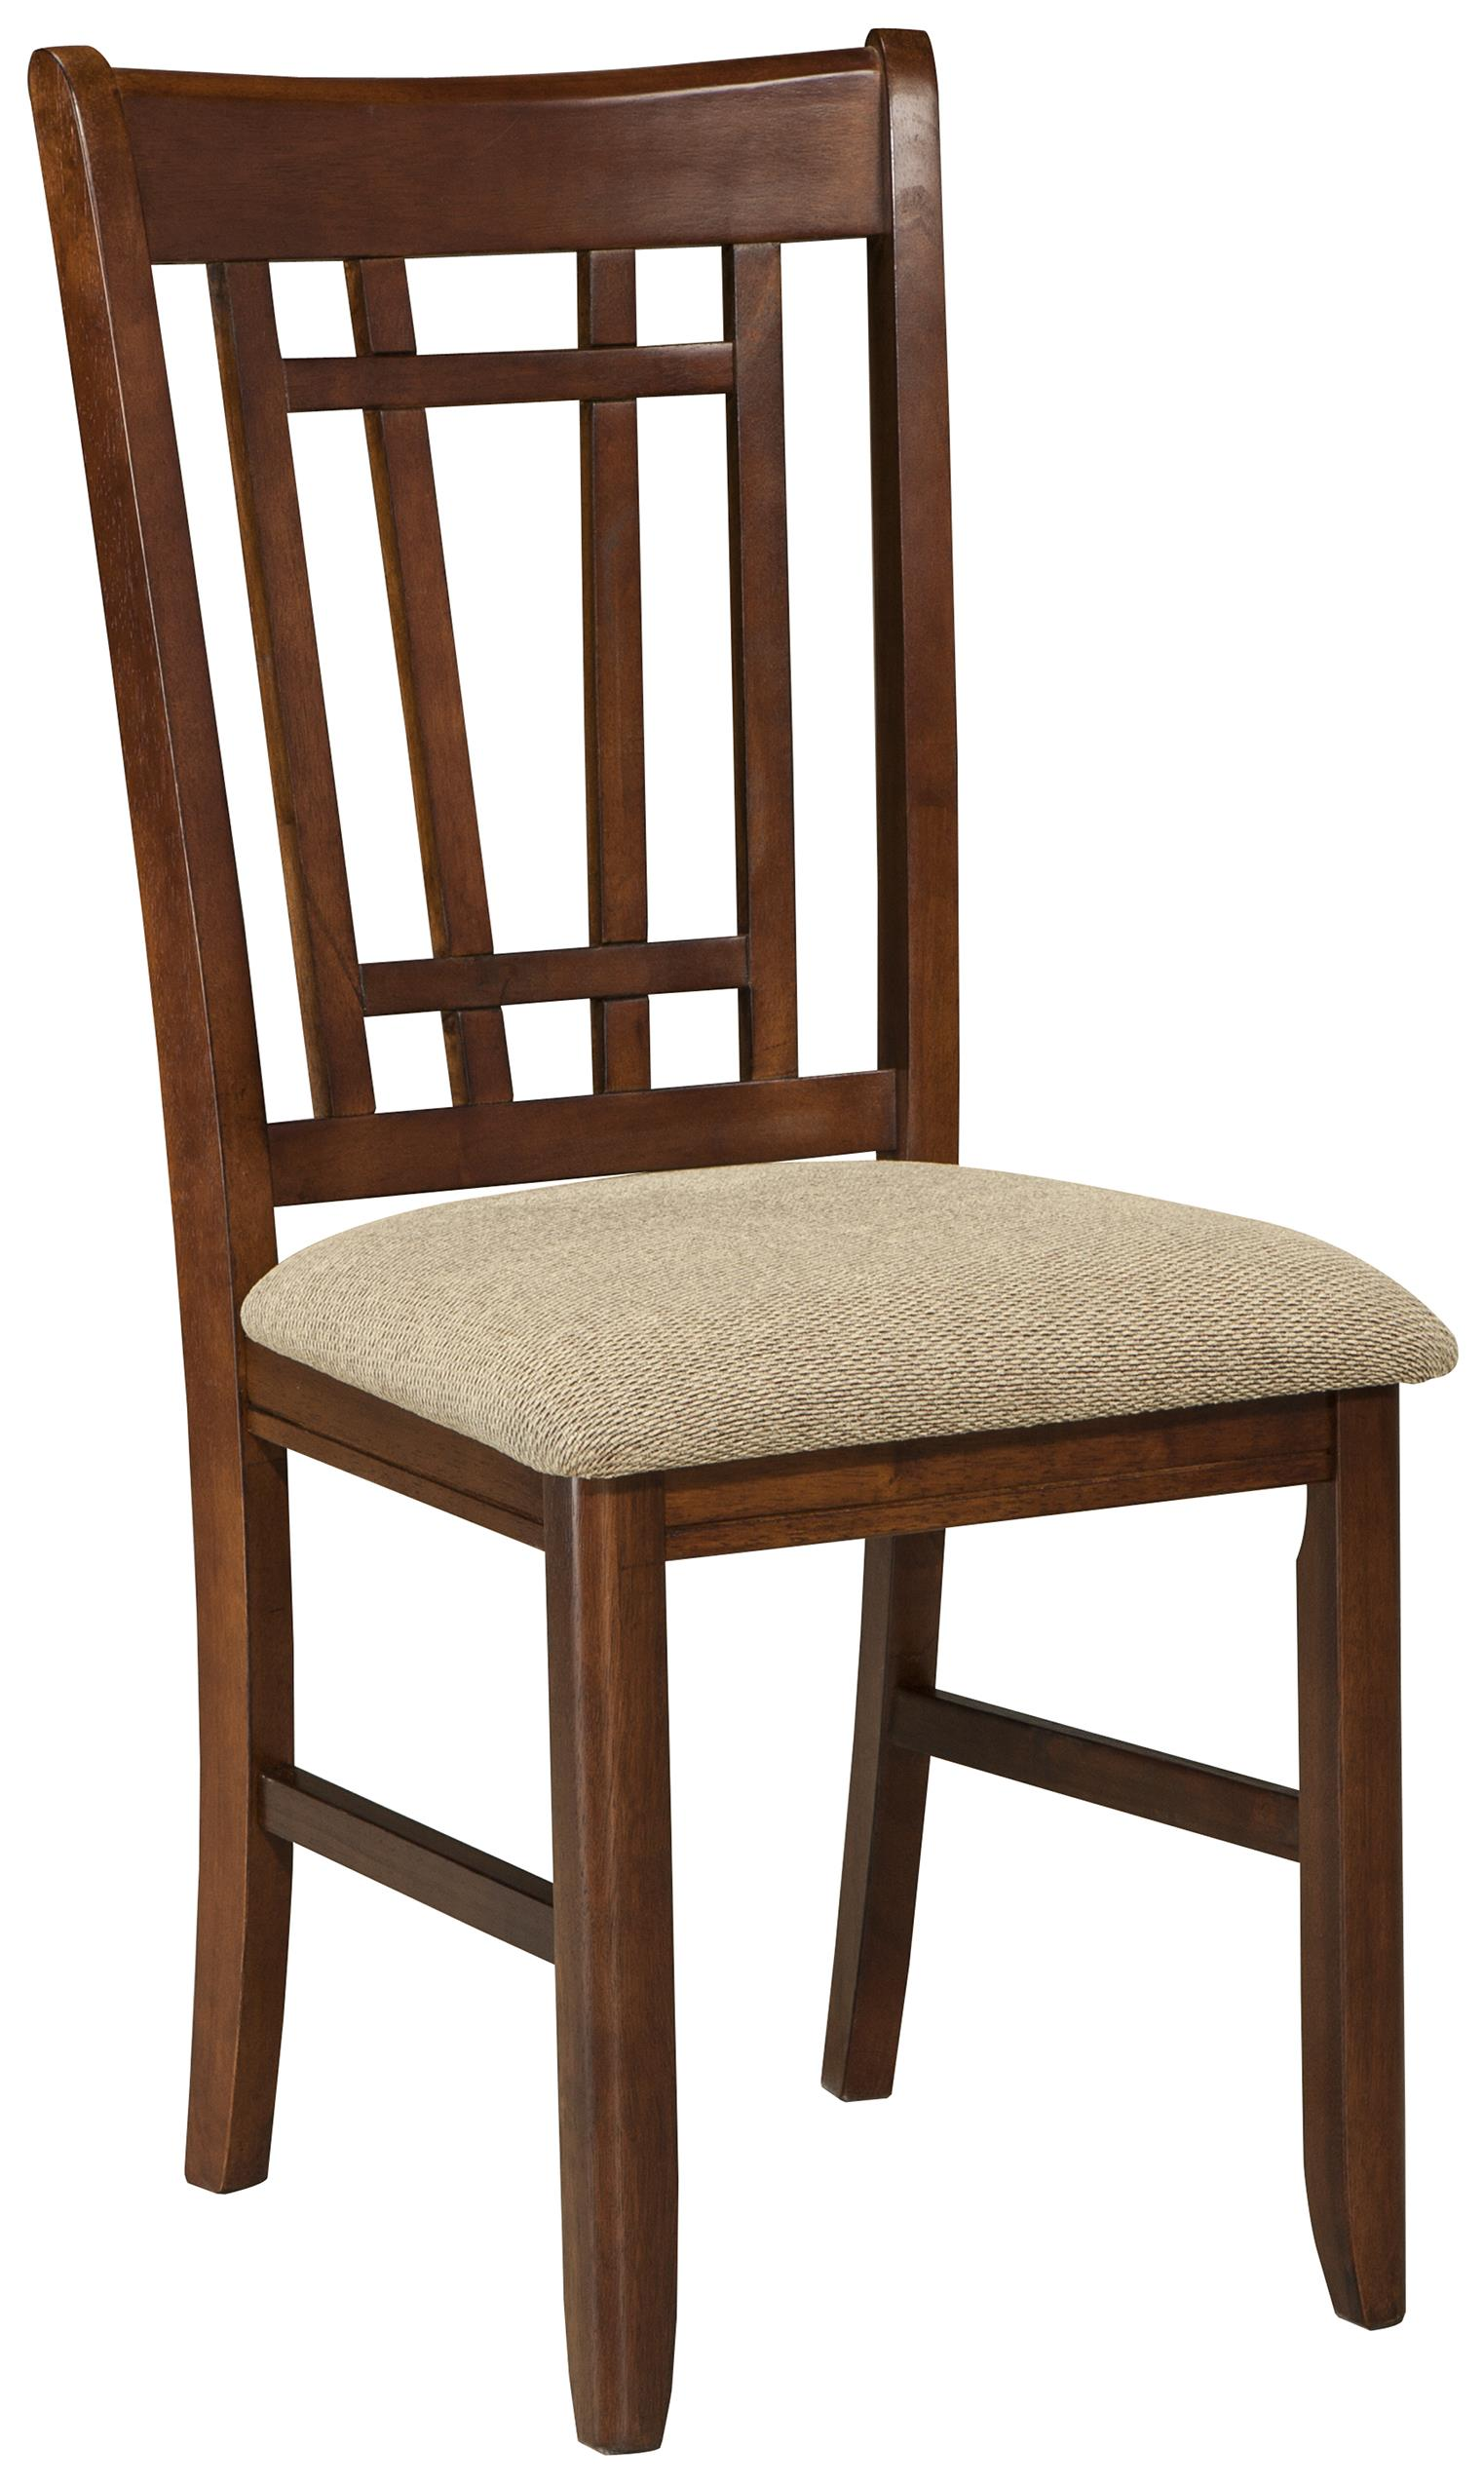 Intercon Mission Casuals Lattice Back Dining Chair - Item Number: MI-CH-850C-DMI-RTA